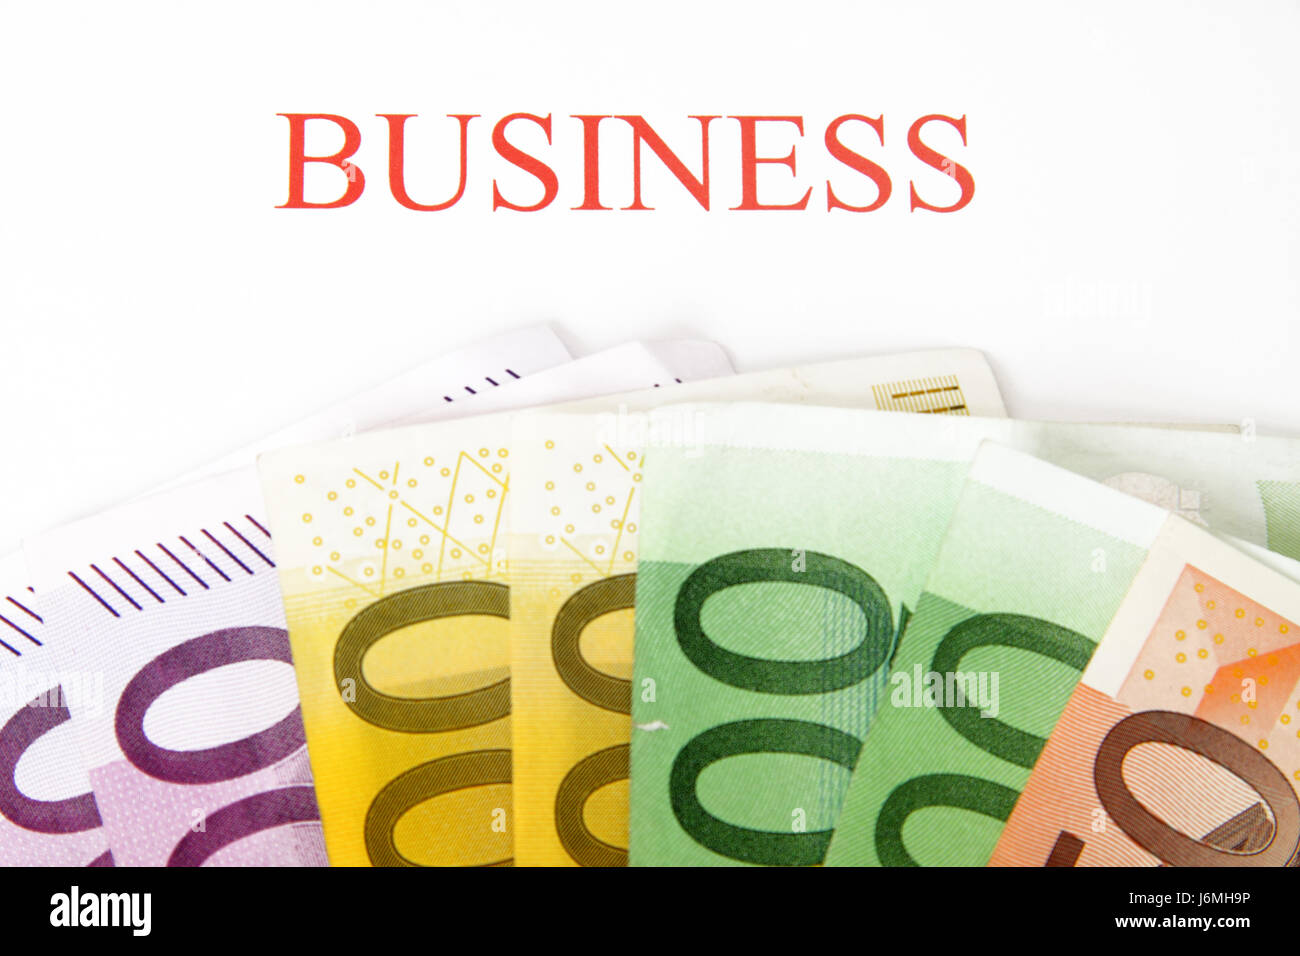 career euro business dealings deal business transaction business bussiness work Stock Photo